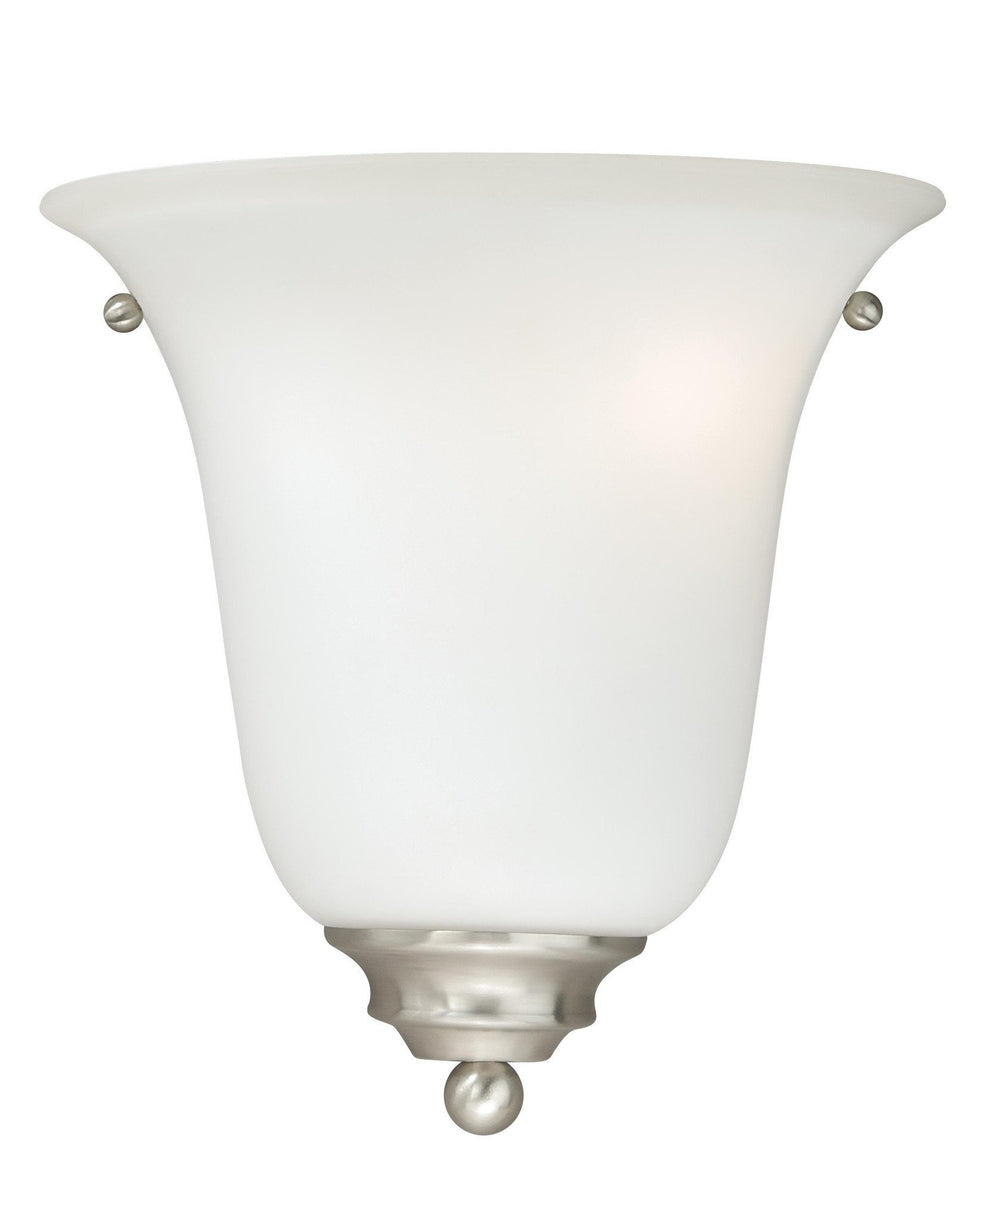 Vaxcel Hartford 9 Inch Wall Sconce Model: W0164